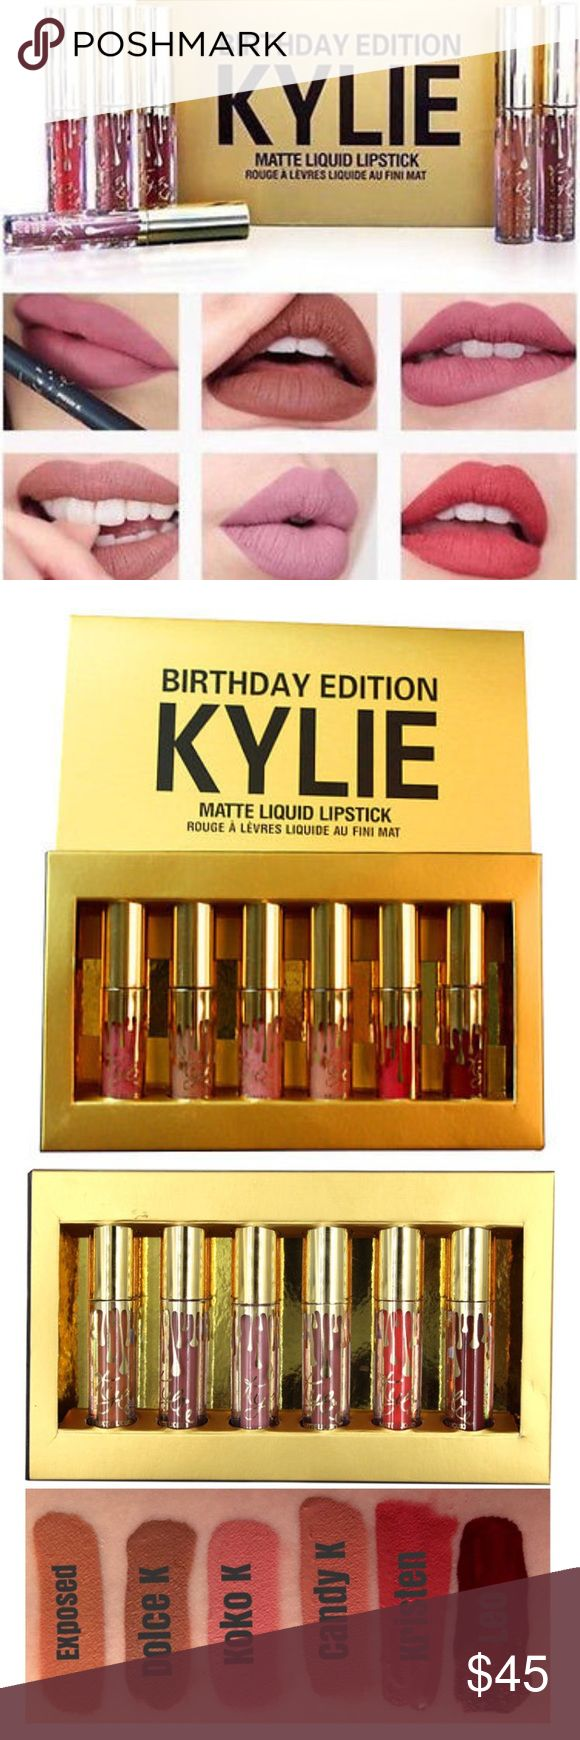 """Kylie """"Birthday Edition"""" liquid lipstick Brand New- comes in original packaging! Kylie """"Birthday Edition"""" liquid lipstick                                               ❤️Limited Edition, Sold Out in Kylie website  ❤️Birthday Edition (6 colors) Kylie Cosmetics Makeup Lipstick"""